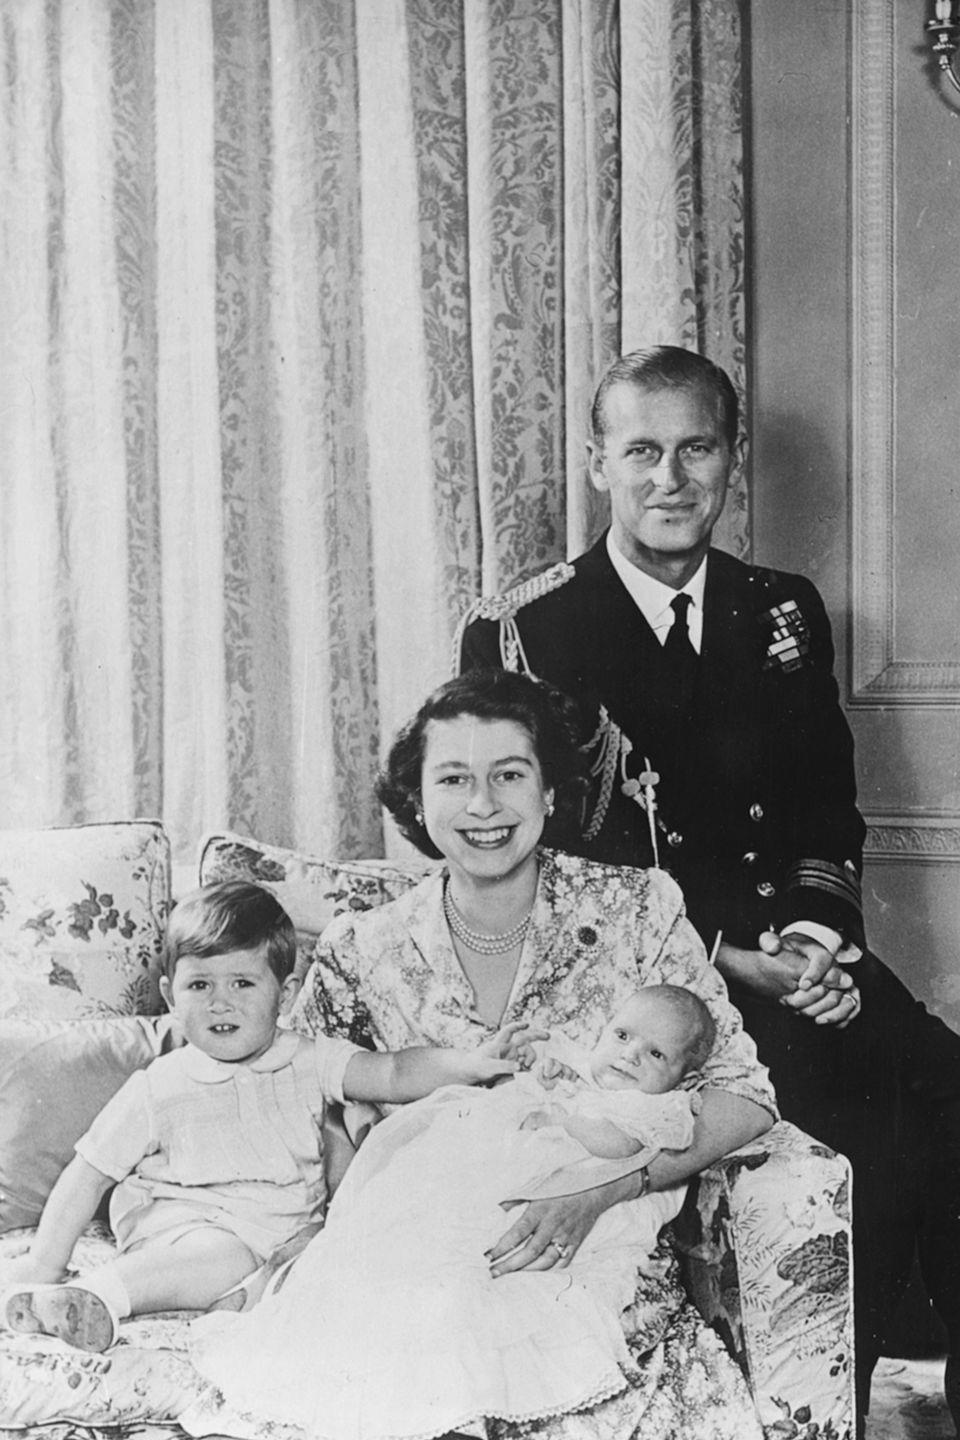 """<p>Up until the early 20th century, royal babies actually had <a href=""""https://www.royal.uk/royal-family-name"""" rel=""""nofollow noopener"""" target=""""_blank"""" data-ylk=""""slk:no last name at all"""" class=""""link rapid-noclick-resp"""">no last name at all</a>. Instead, they were known by the names of the county of which they ruled.</p>"""